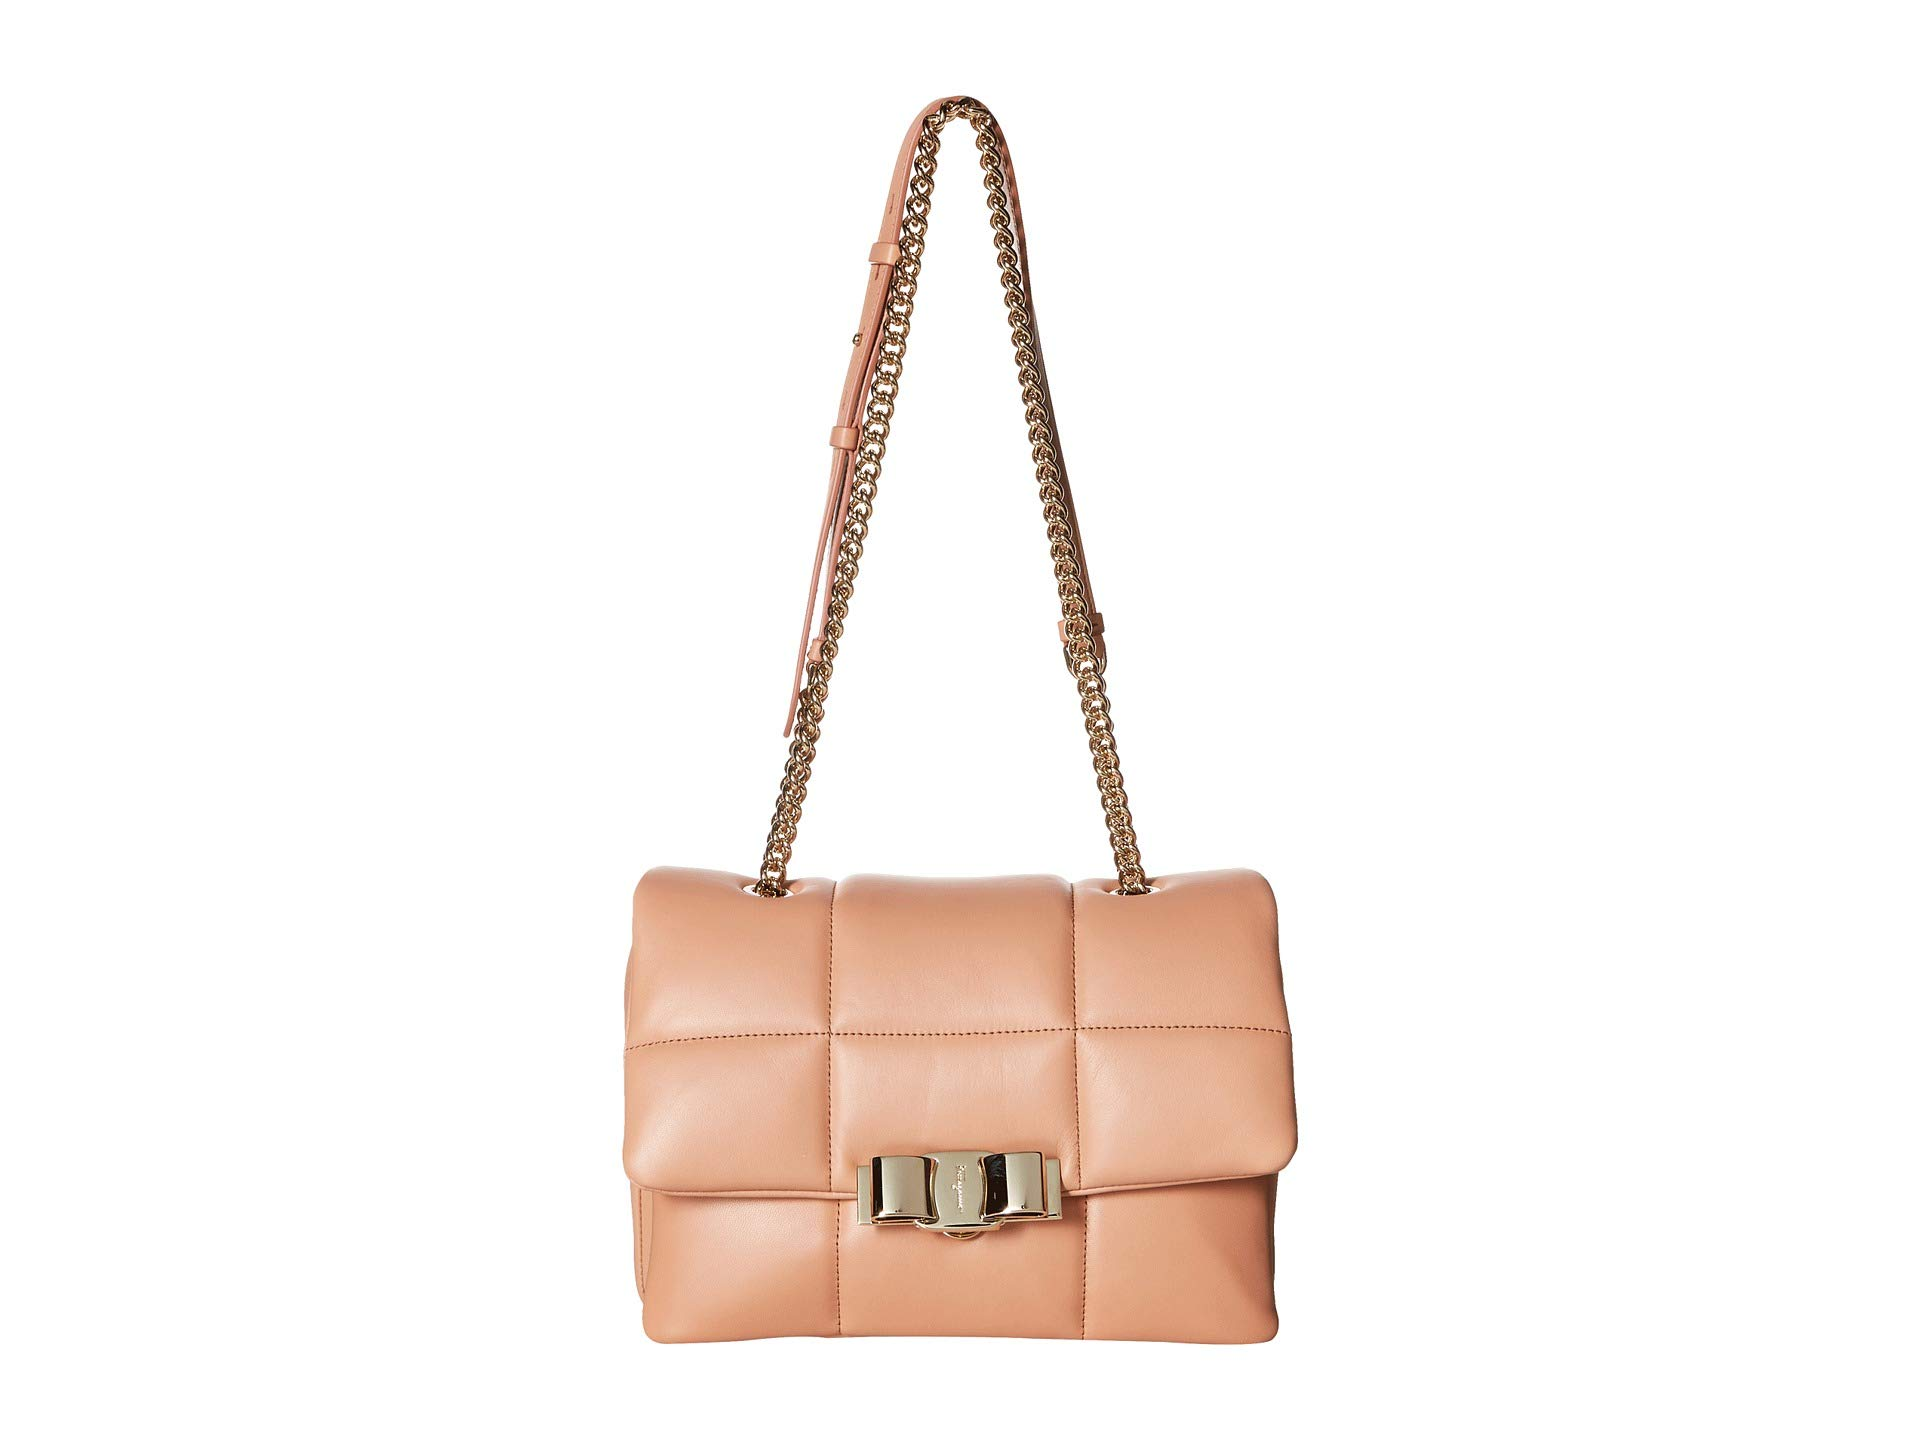 21h342 Salvatore Ferragamo Ferragamo Salvatore Blush Blush New New Salvatore 21h342 Ferragamo Blush 21h342 New PAnqfF5xZZ